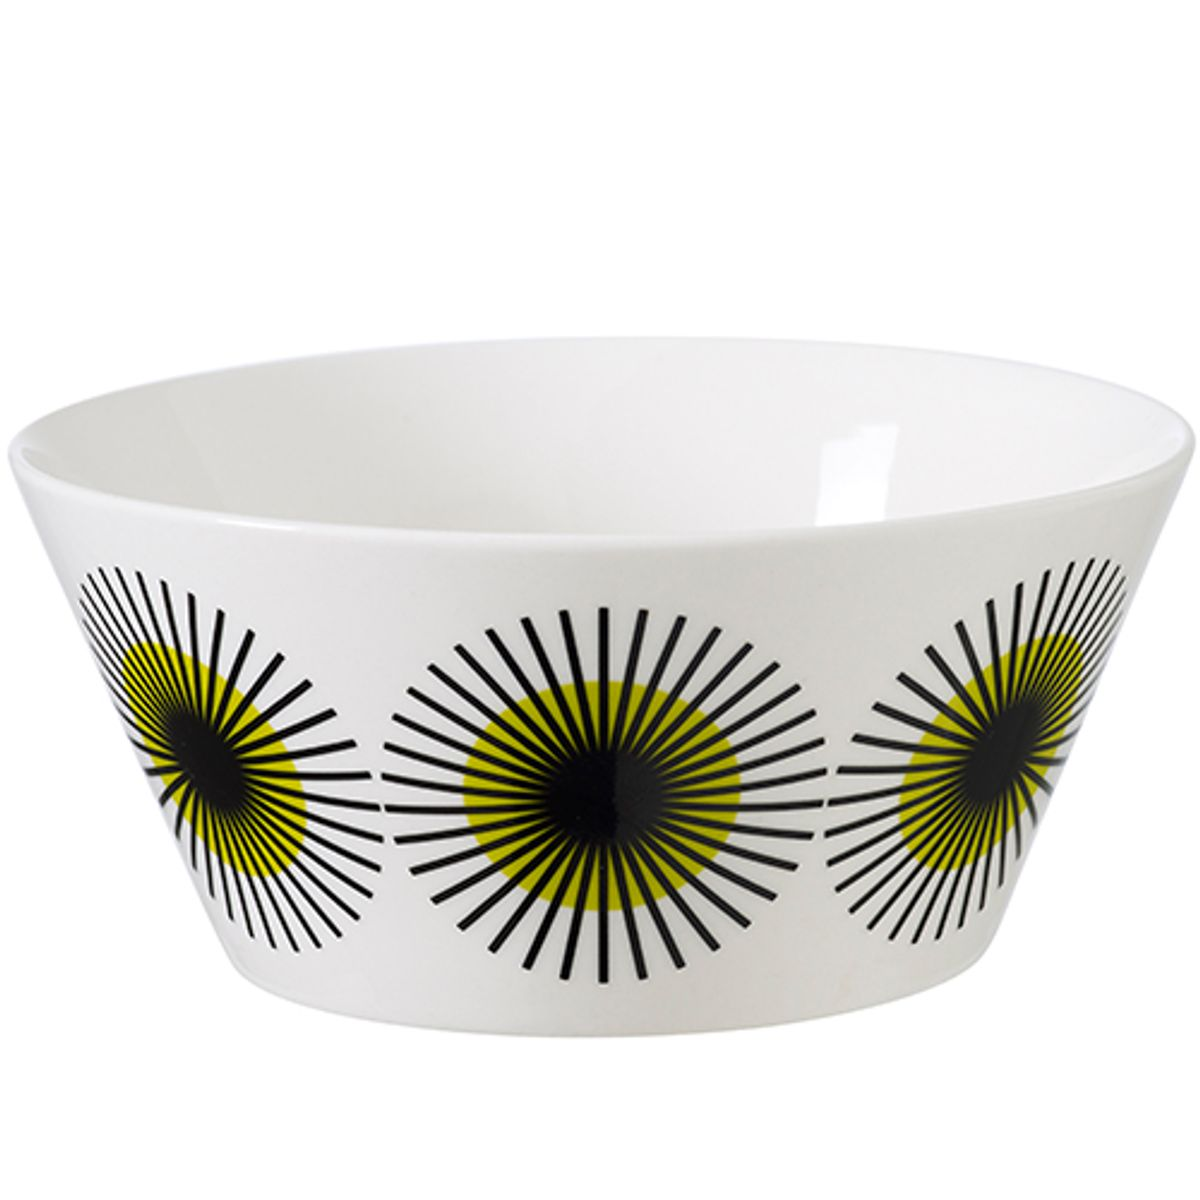 Bol en porcelaine LuluBowl Superliving - jaune citron